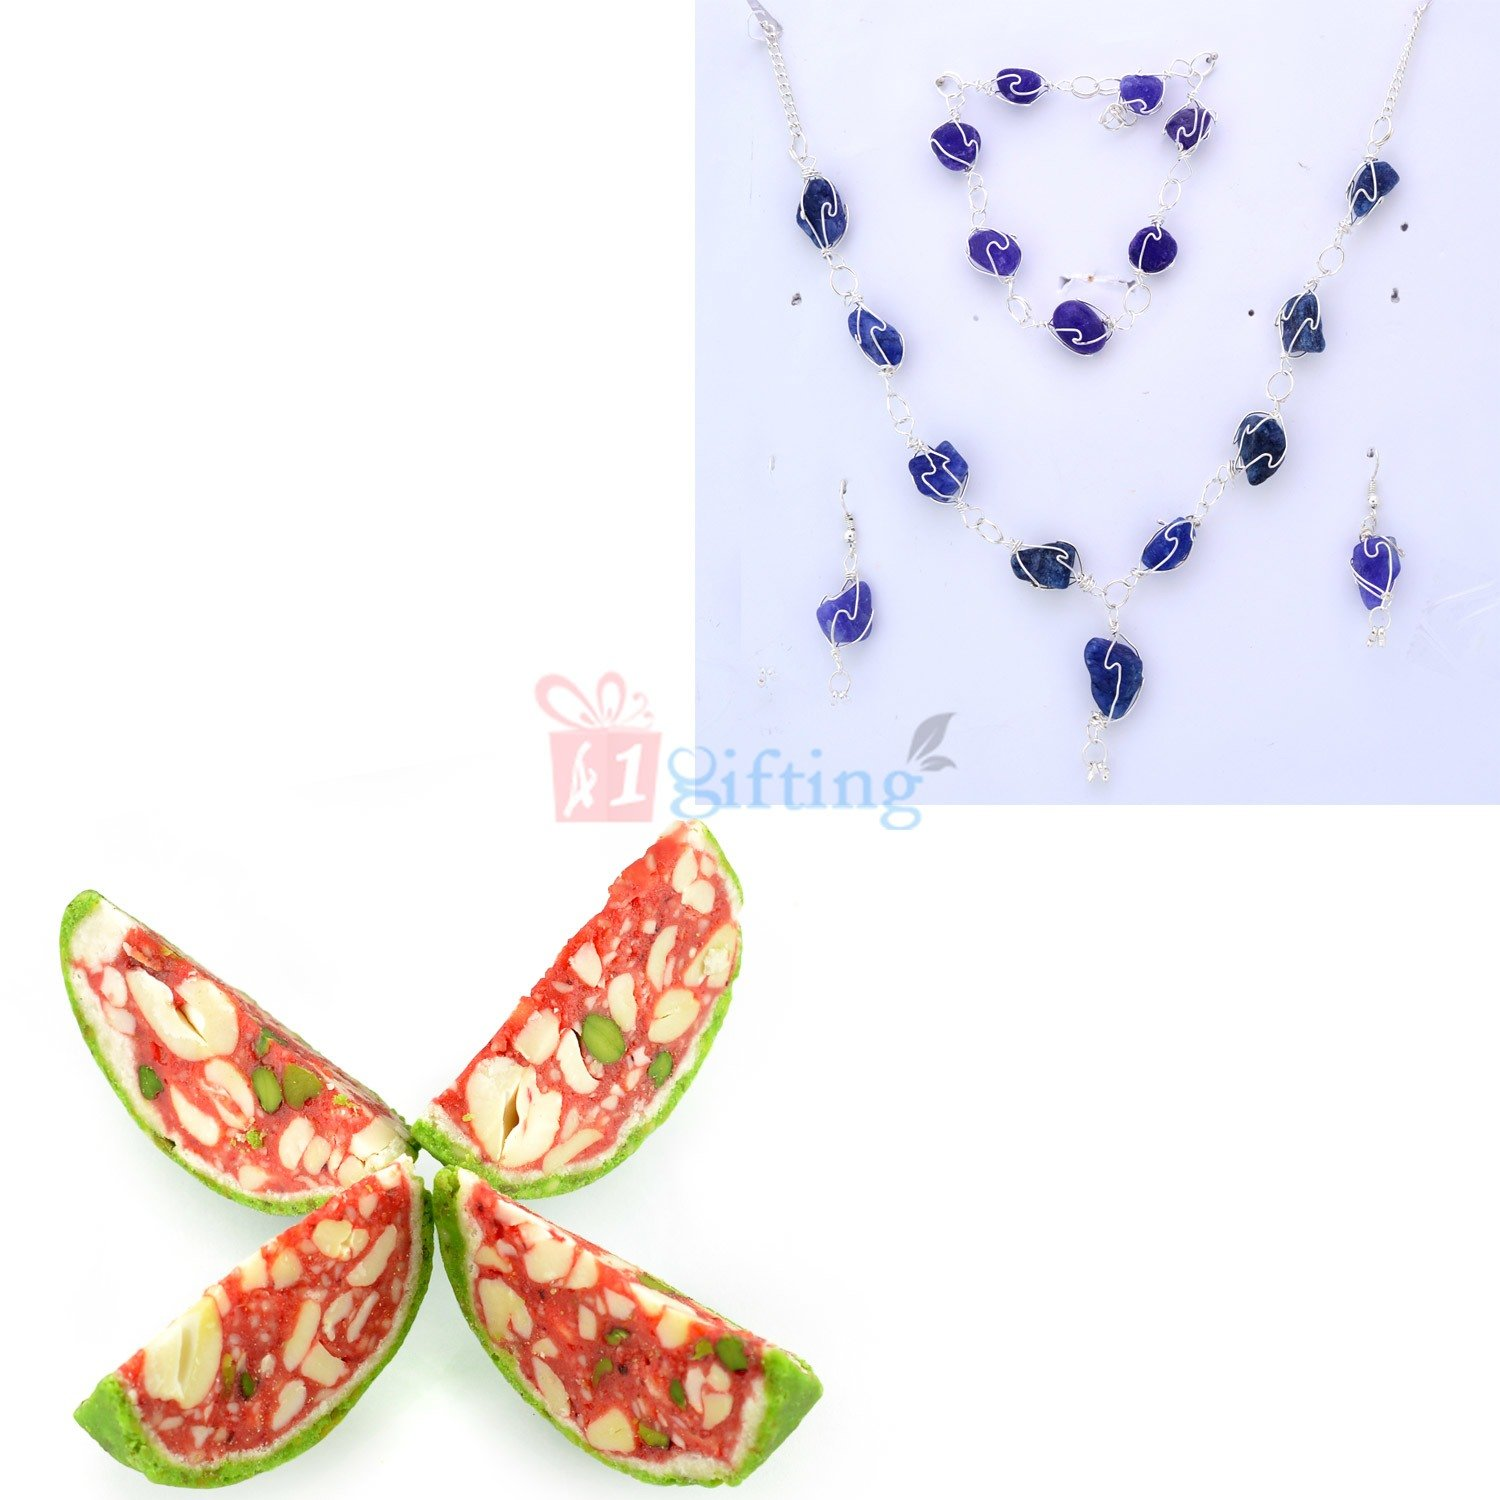 Cute Jewellery Gift with Sweet